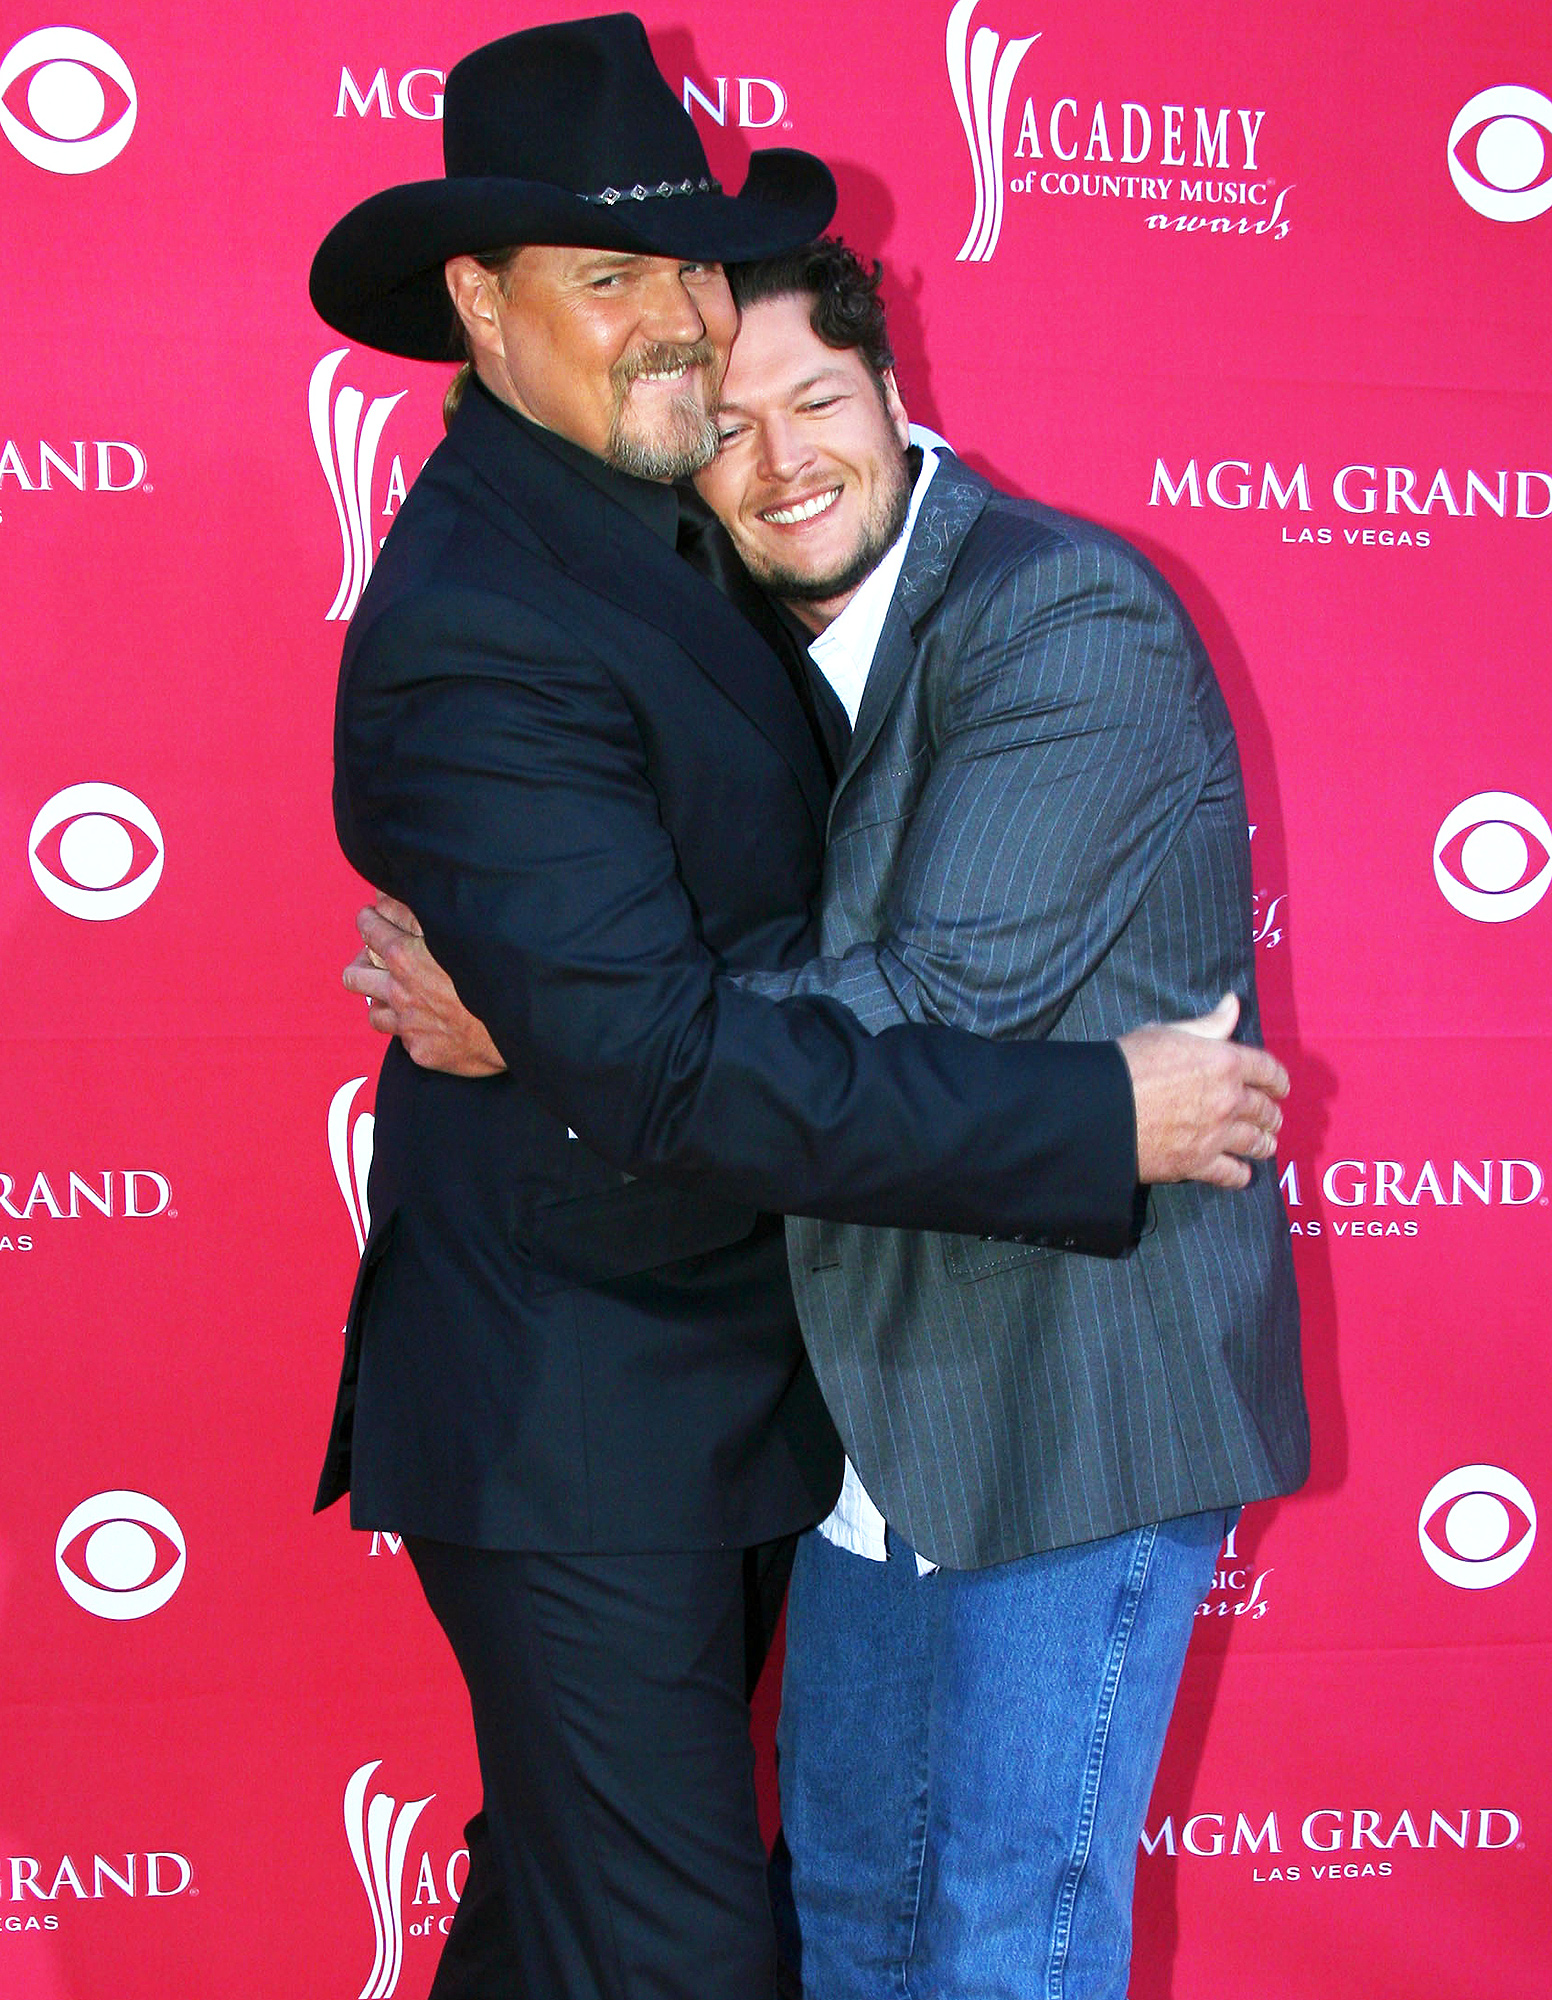 44th Annual Academy of Country Music Awards Arrivals at the MGM Grand, Las Vegas, America - 05 Apr 2009